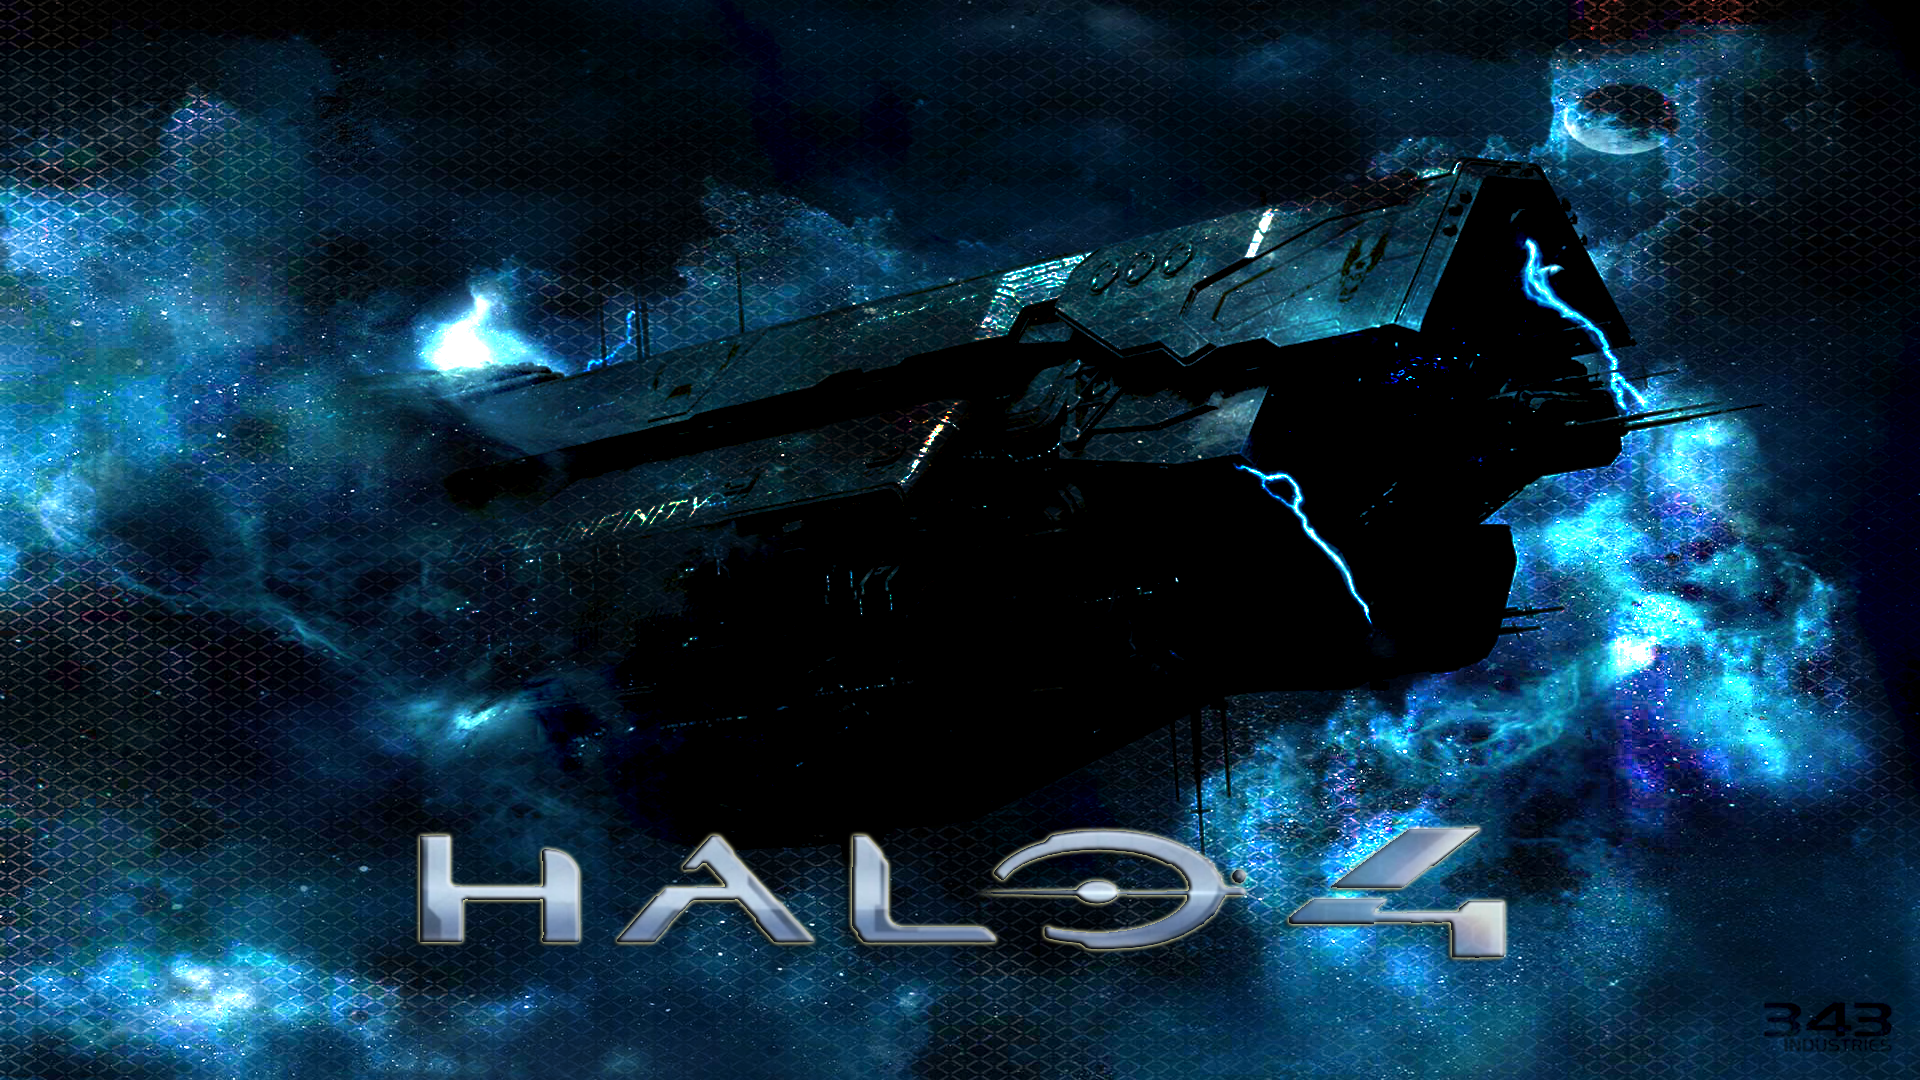 Cool Video Game Wallpapers Halowallpapers Halo Campaign Video Game X 1920x1080